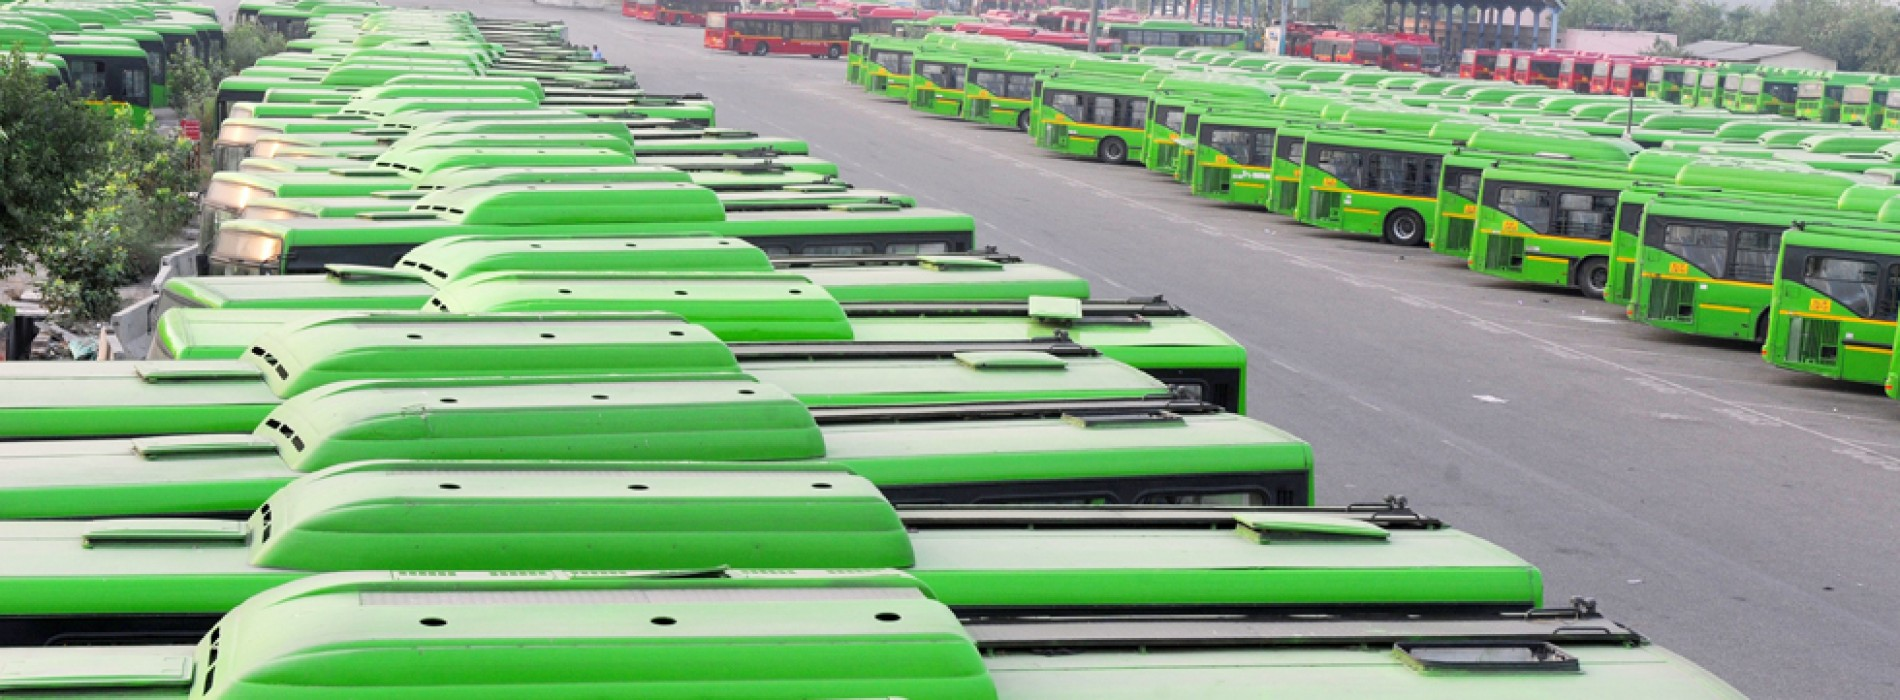 Free travel on DTC and cluster buses during Odd-Even scheme says Delhi government